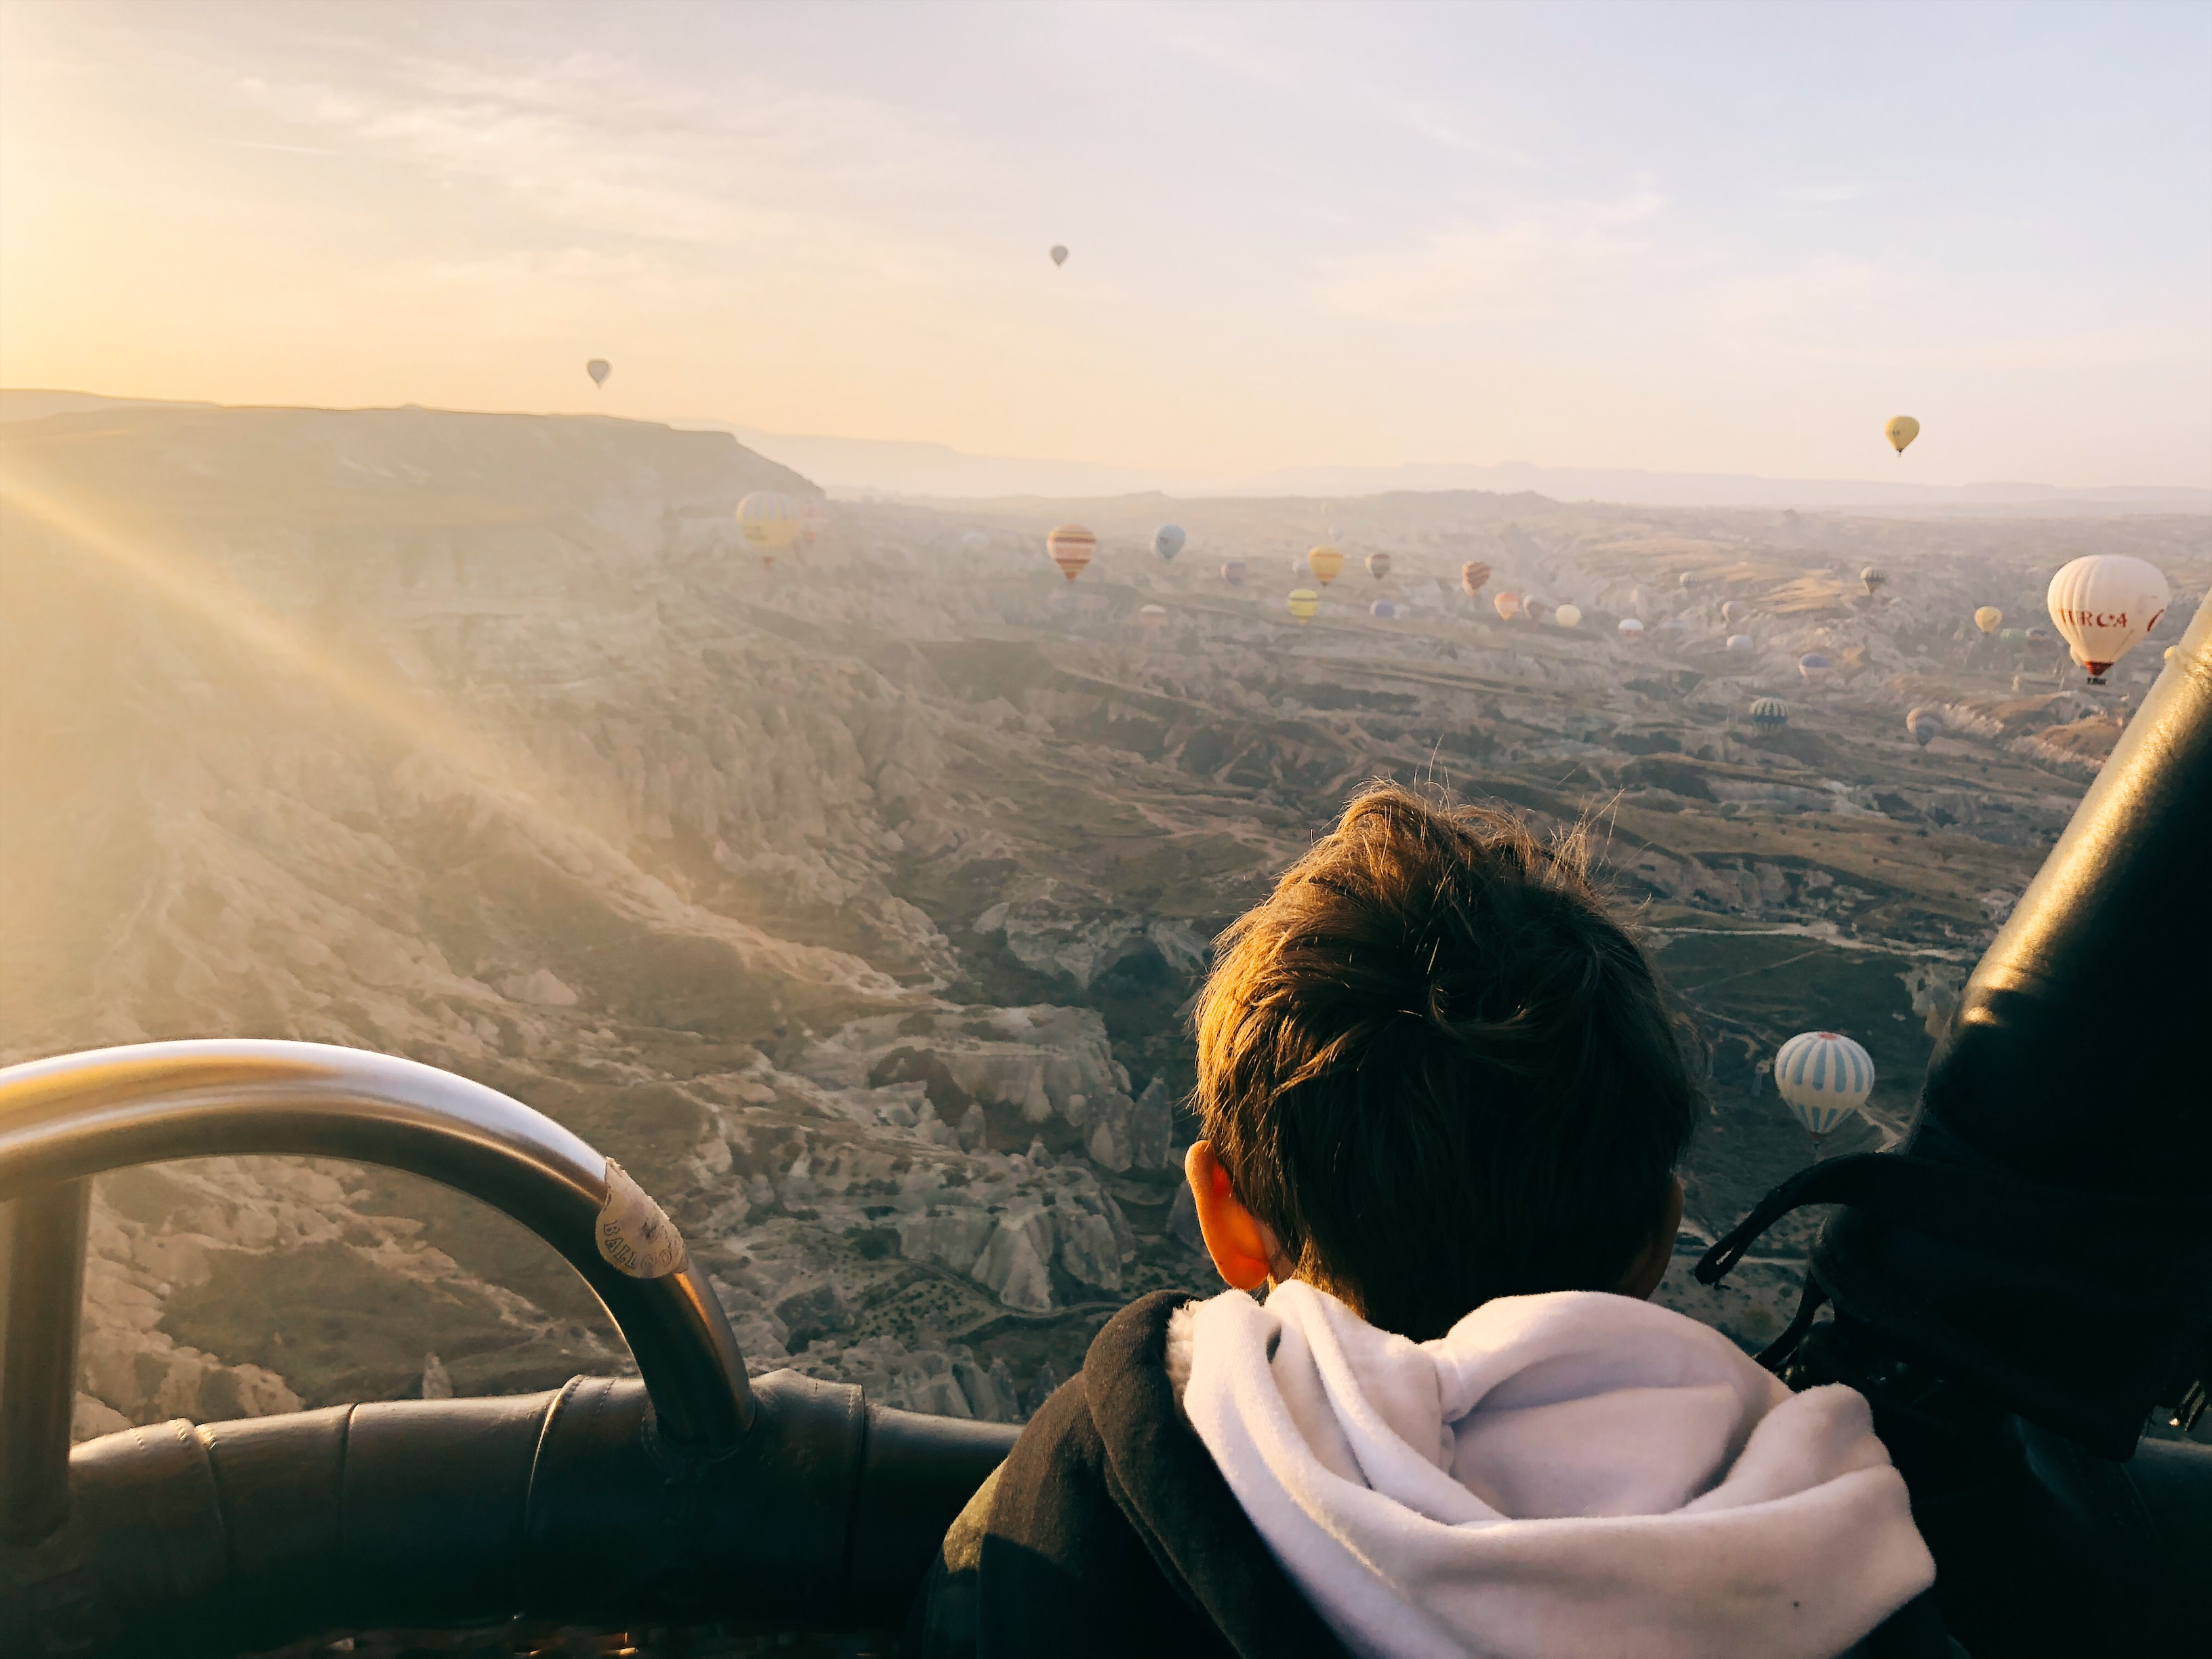 hot air ballon ride at sunrise